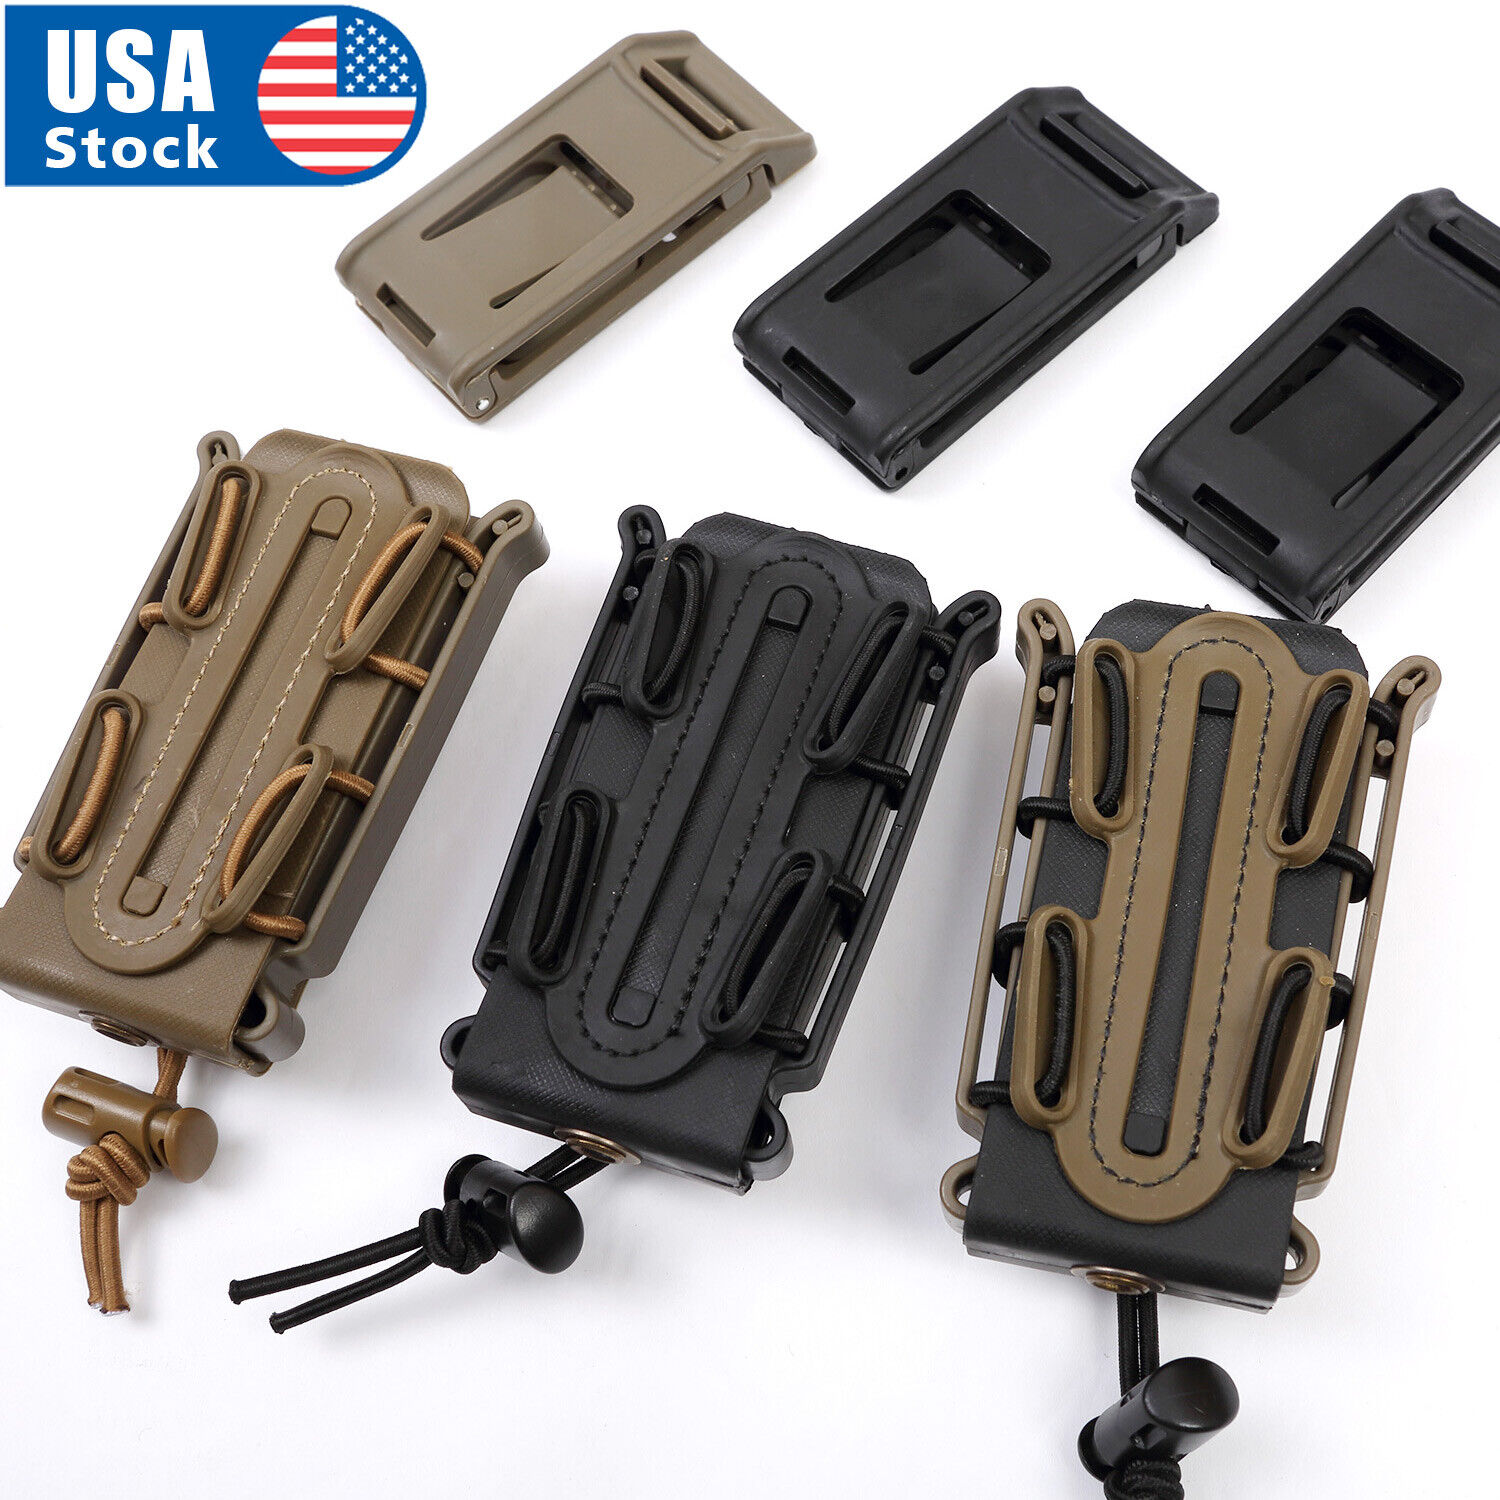 Tactical Scorpion Soft Shell 9mm Pistol Magazine Pouch Carrier Tall w/ Belt Loop Holsters, Belts & Pouches